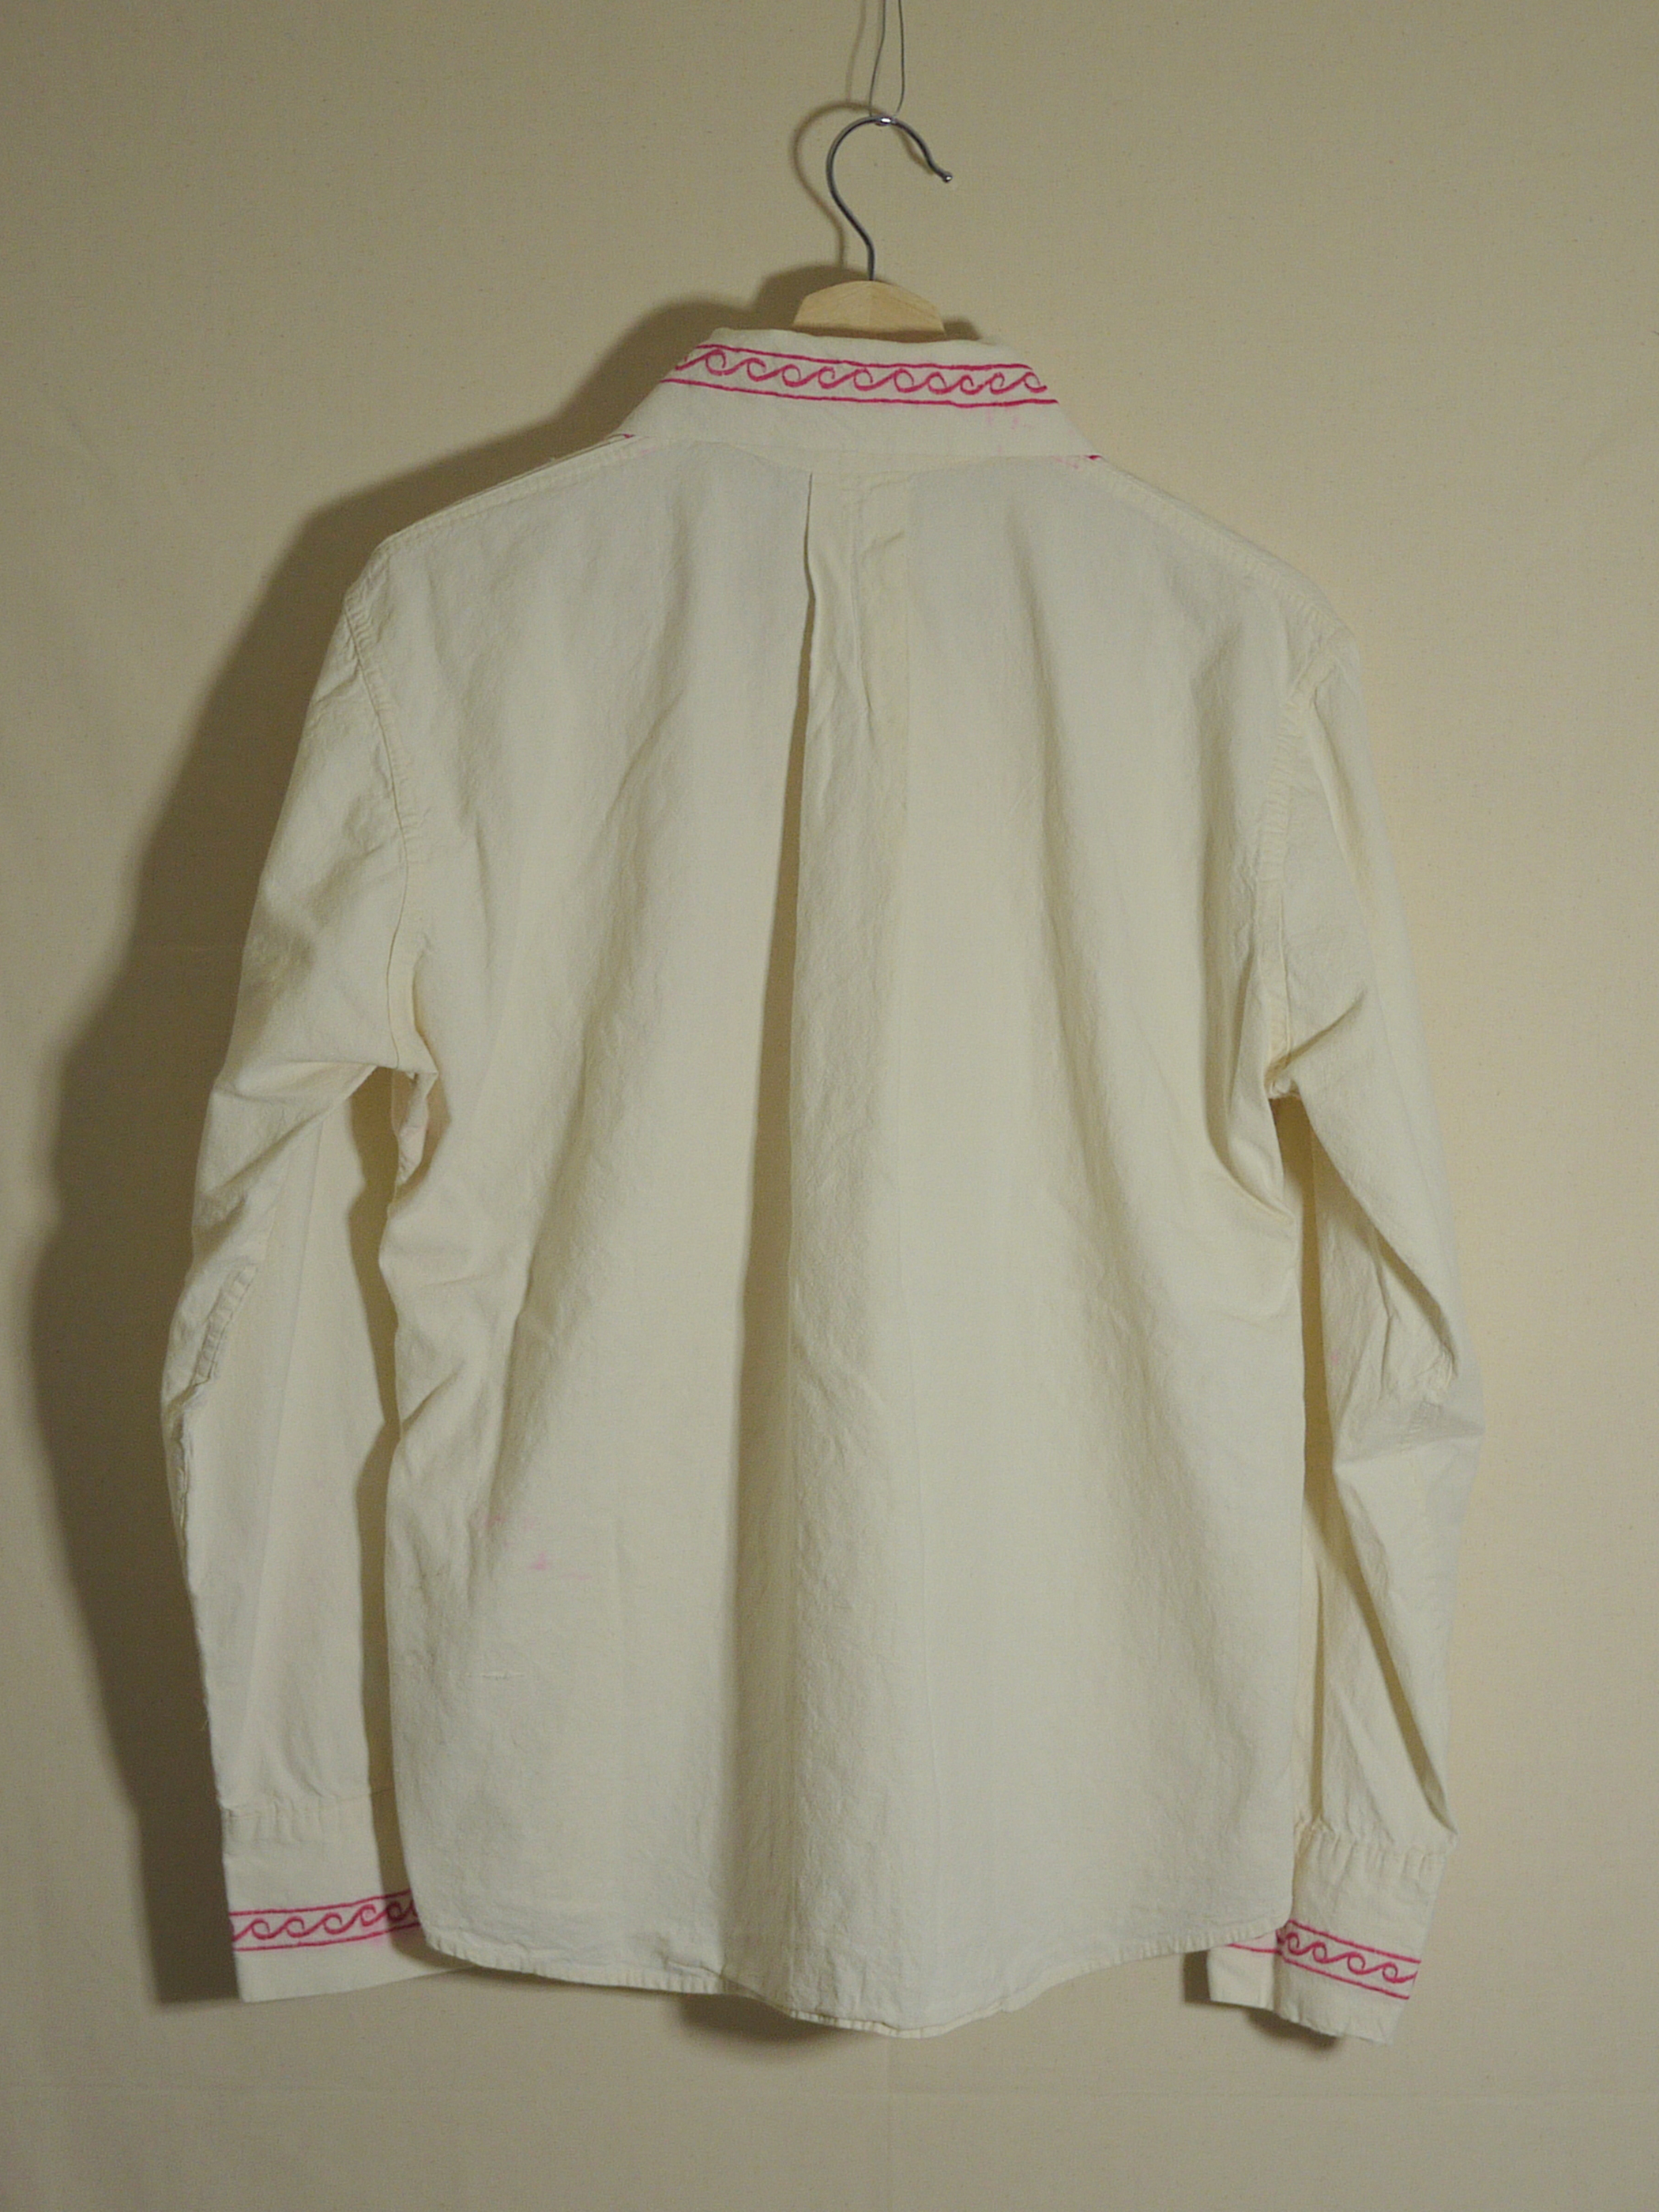 Embroidery shirt